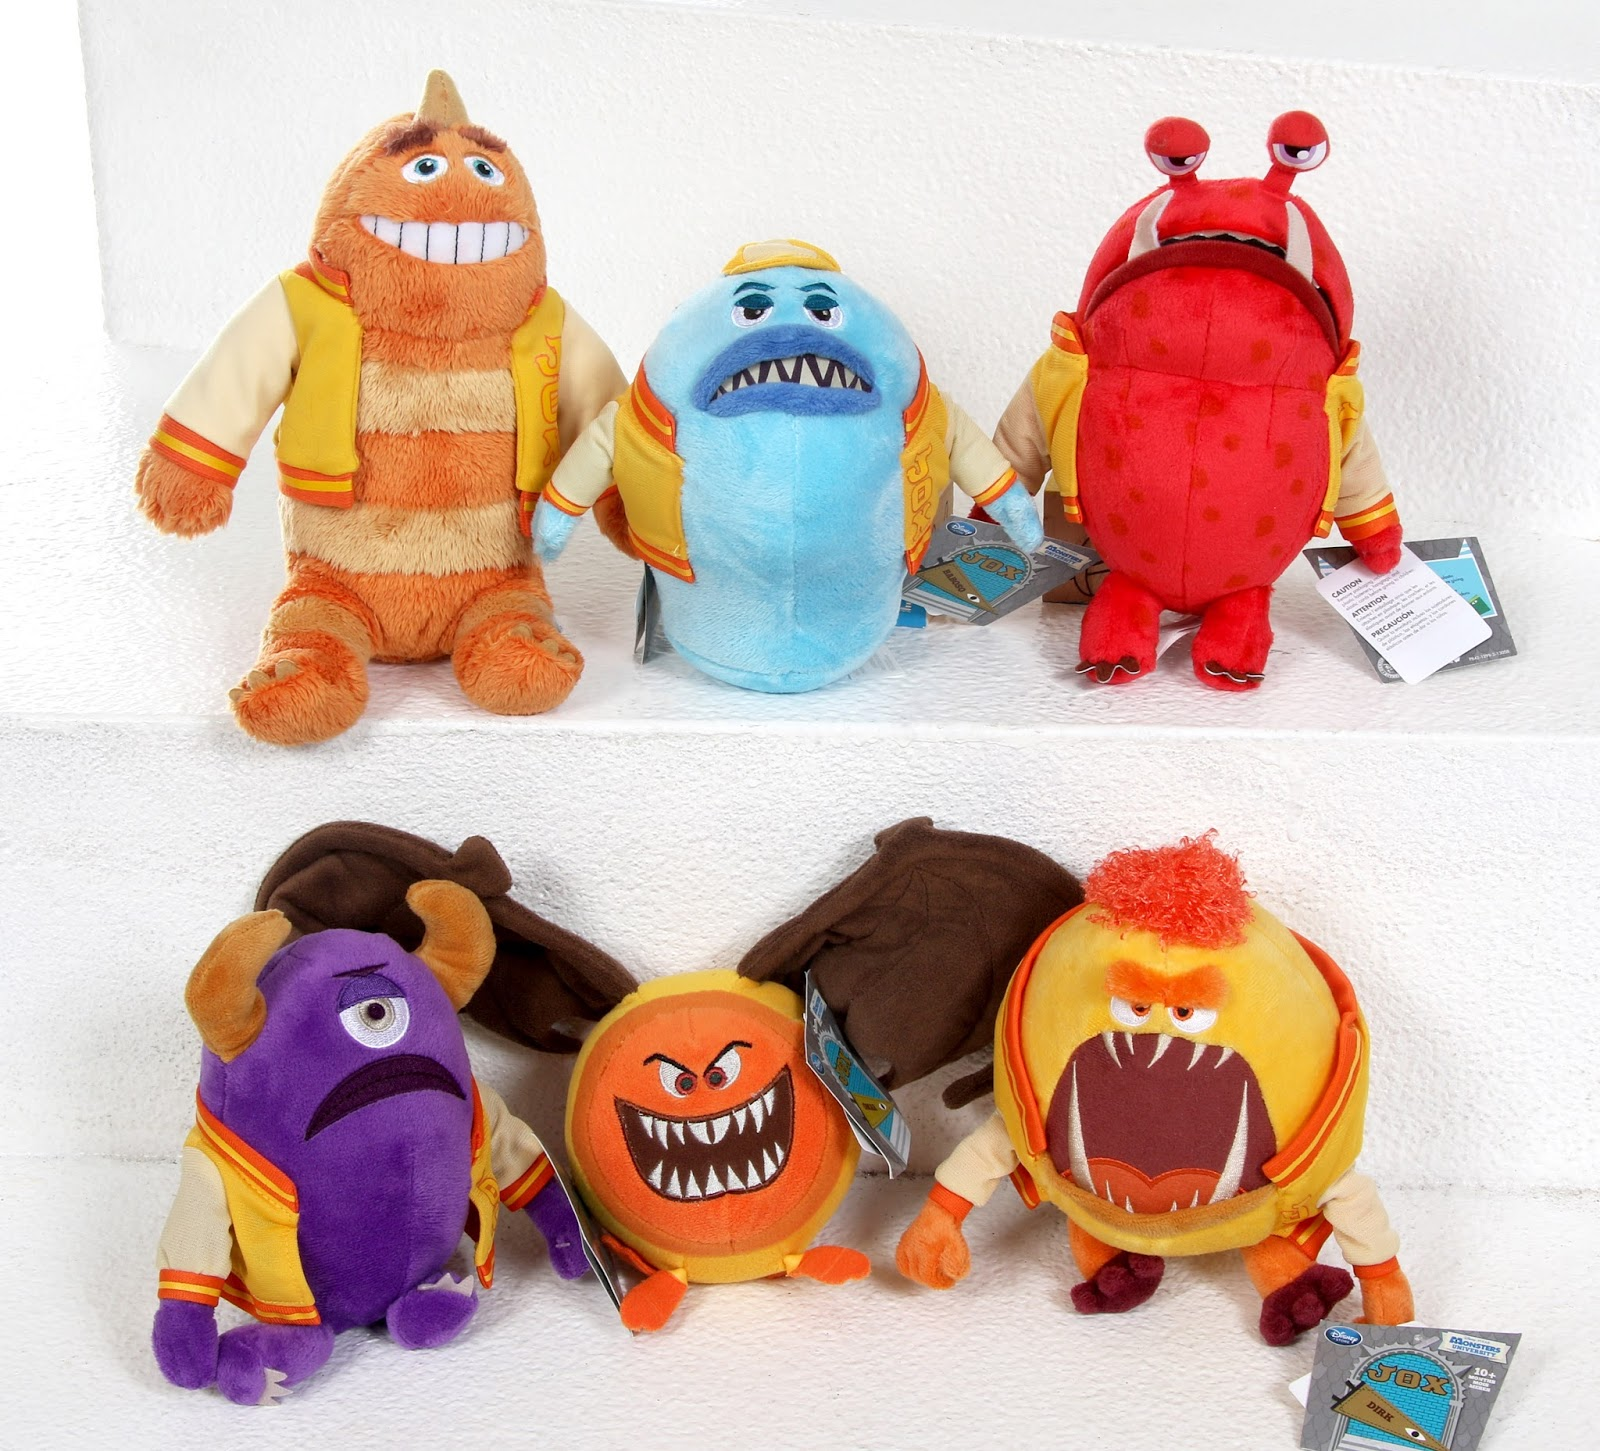 monsters university disney store JOX plush